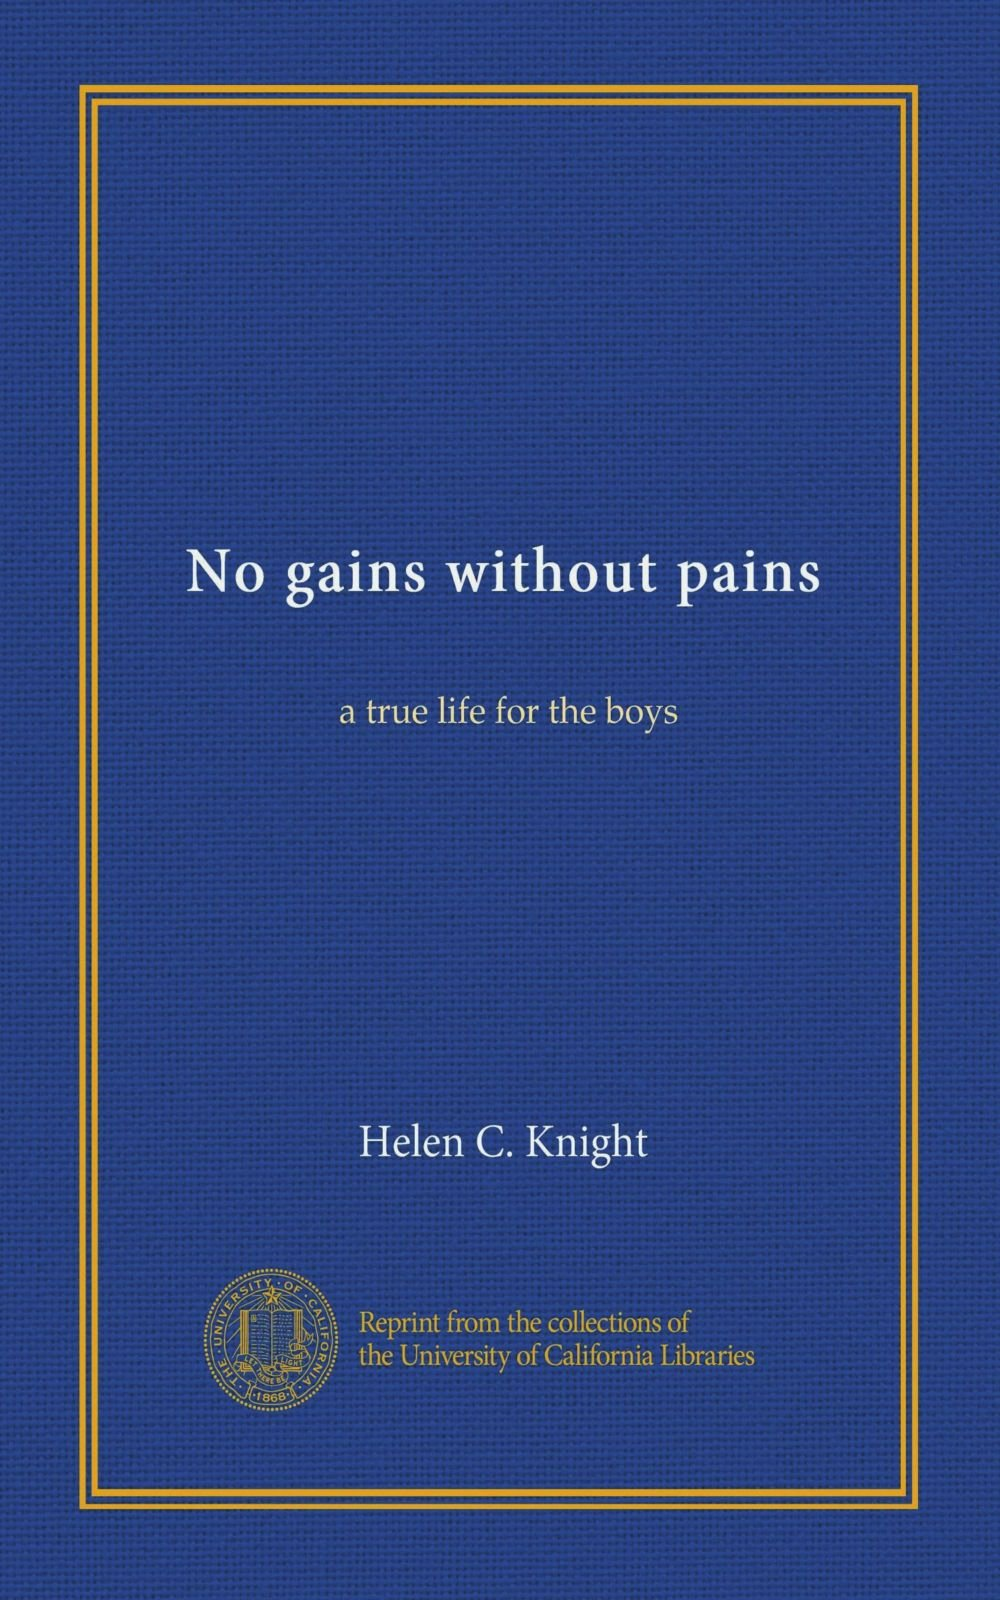 No gains without pains: a true life for the boys PDF